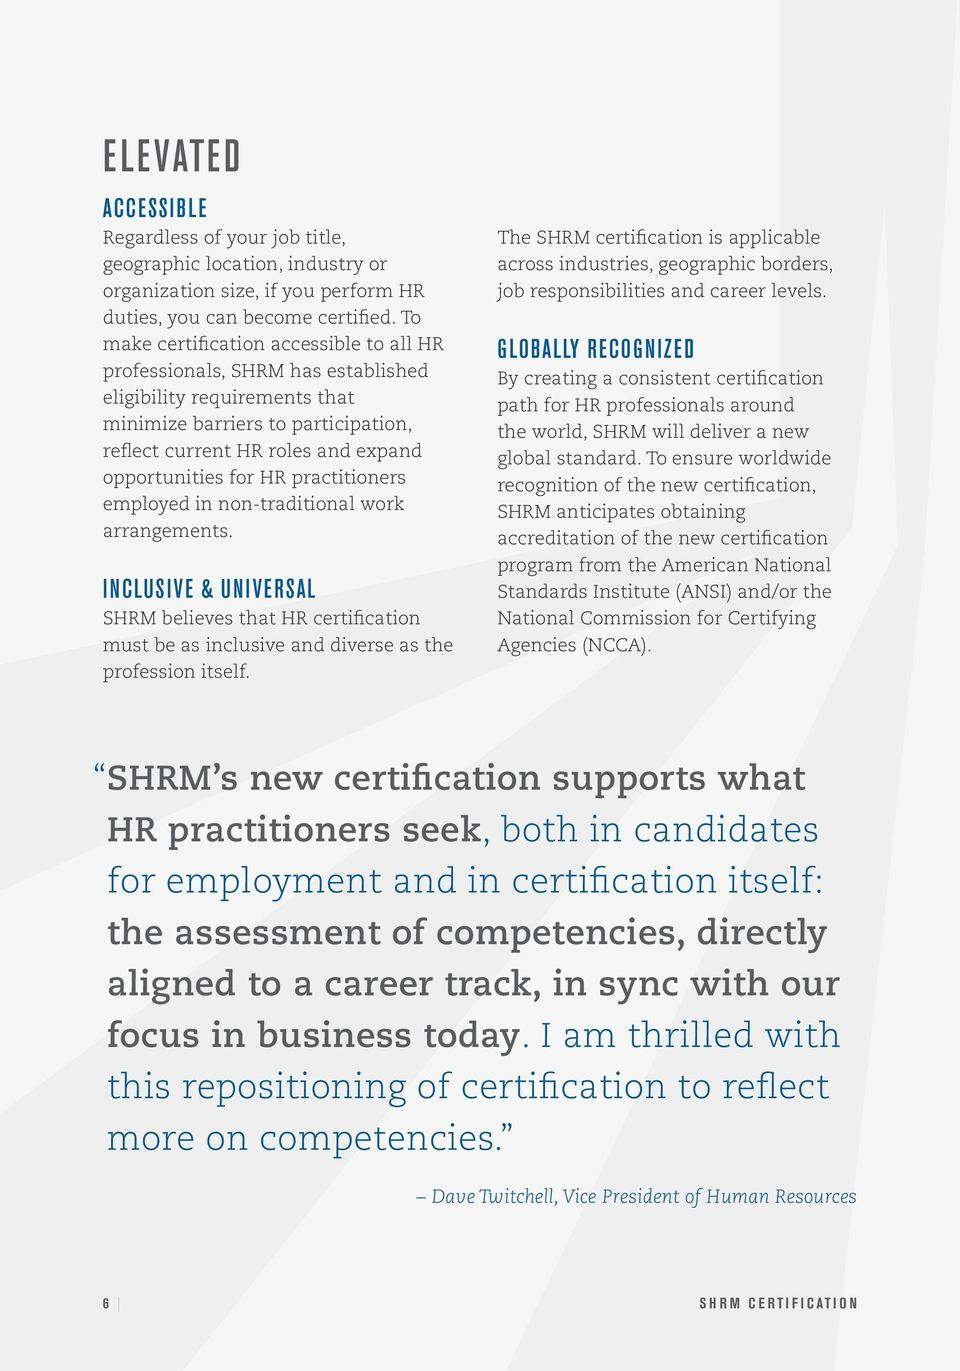 HR practitioners employed in non-traditional work arrangements. INCLUSIVE & UNIVERSAL SHRM believes that HR certification must be as inclusive and diverse as the profession itself.